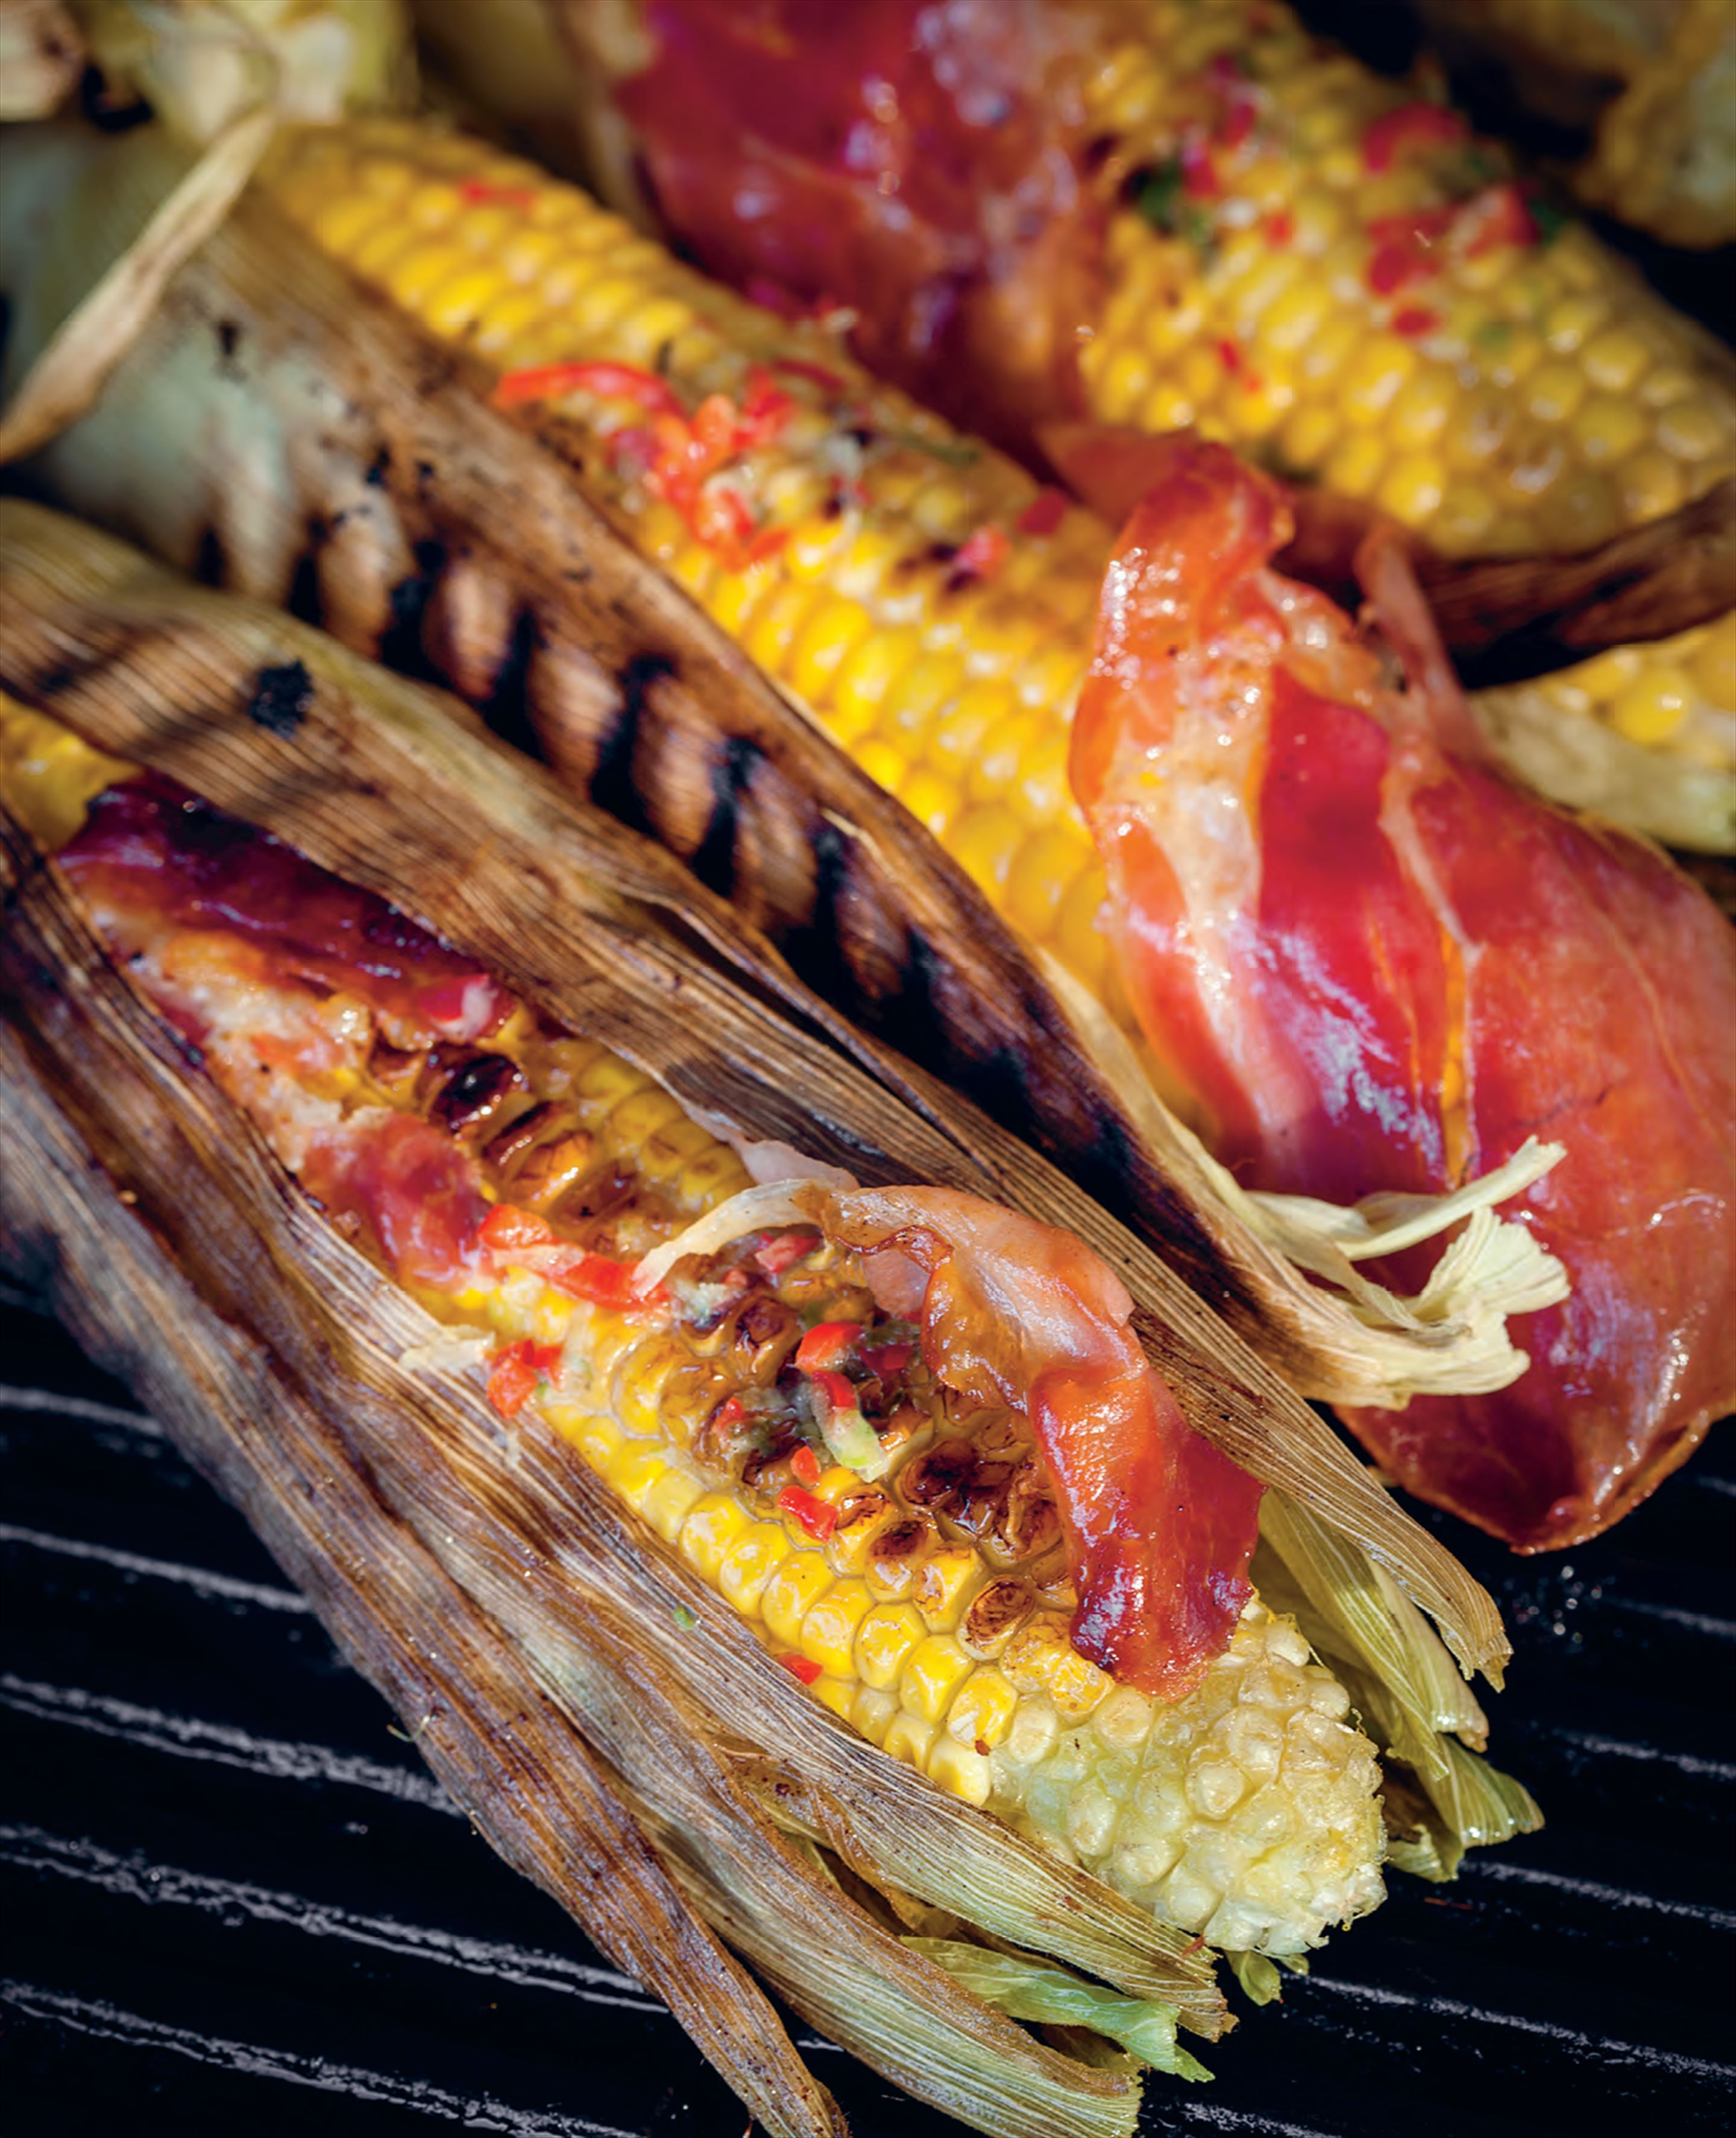 Barbecued corn with bacon and chilli butter